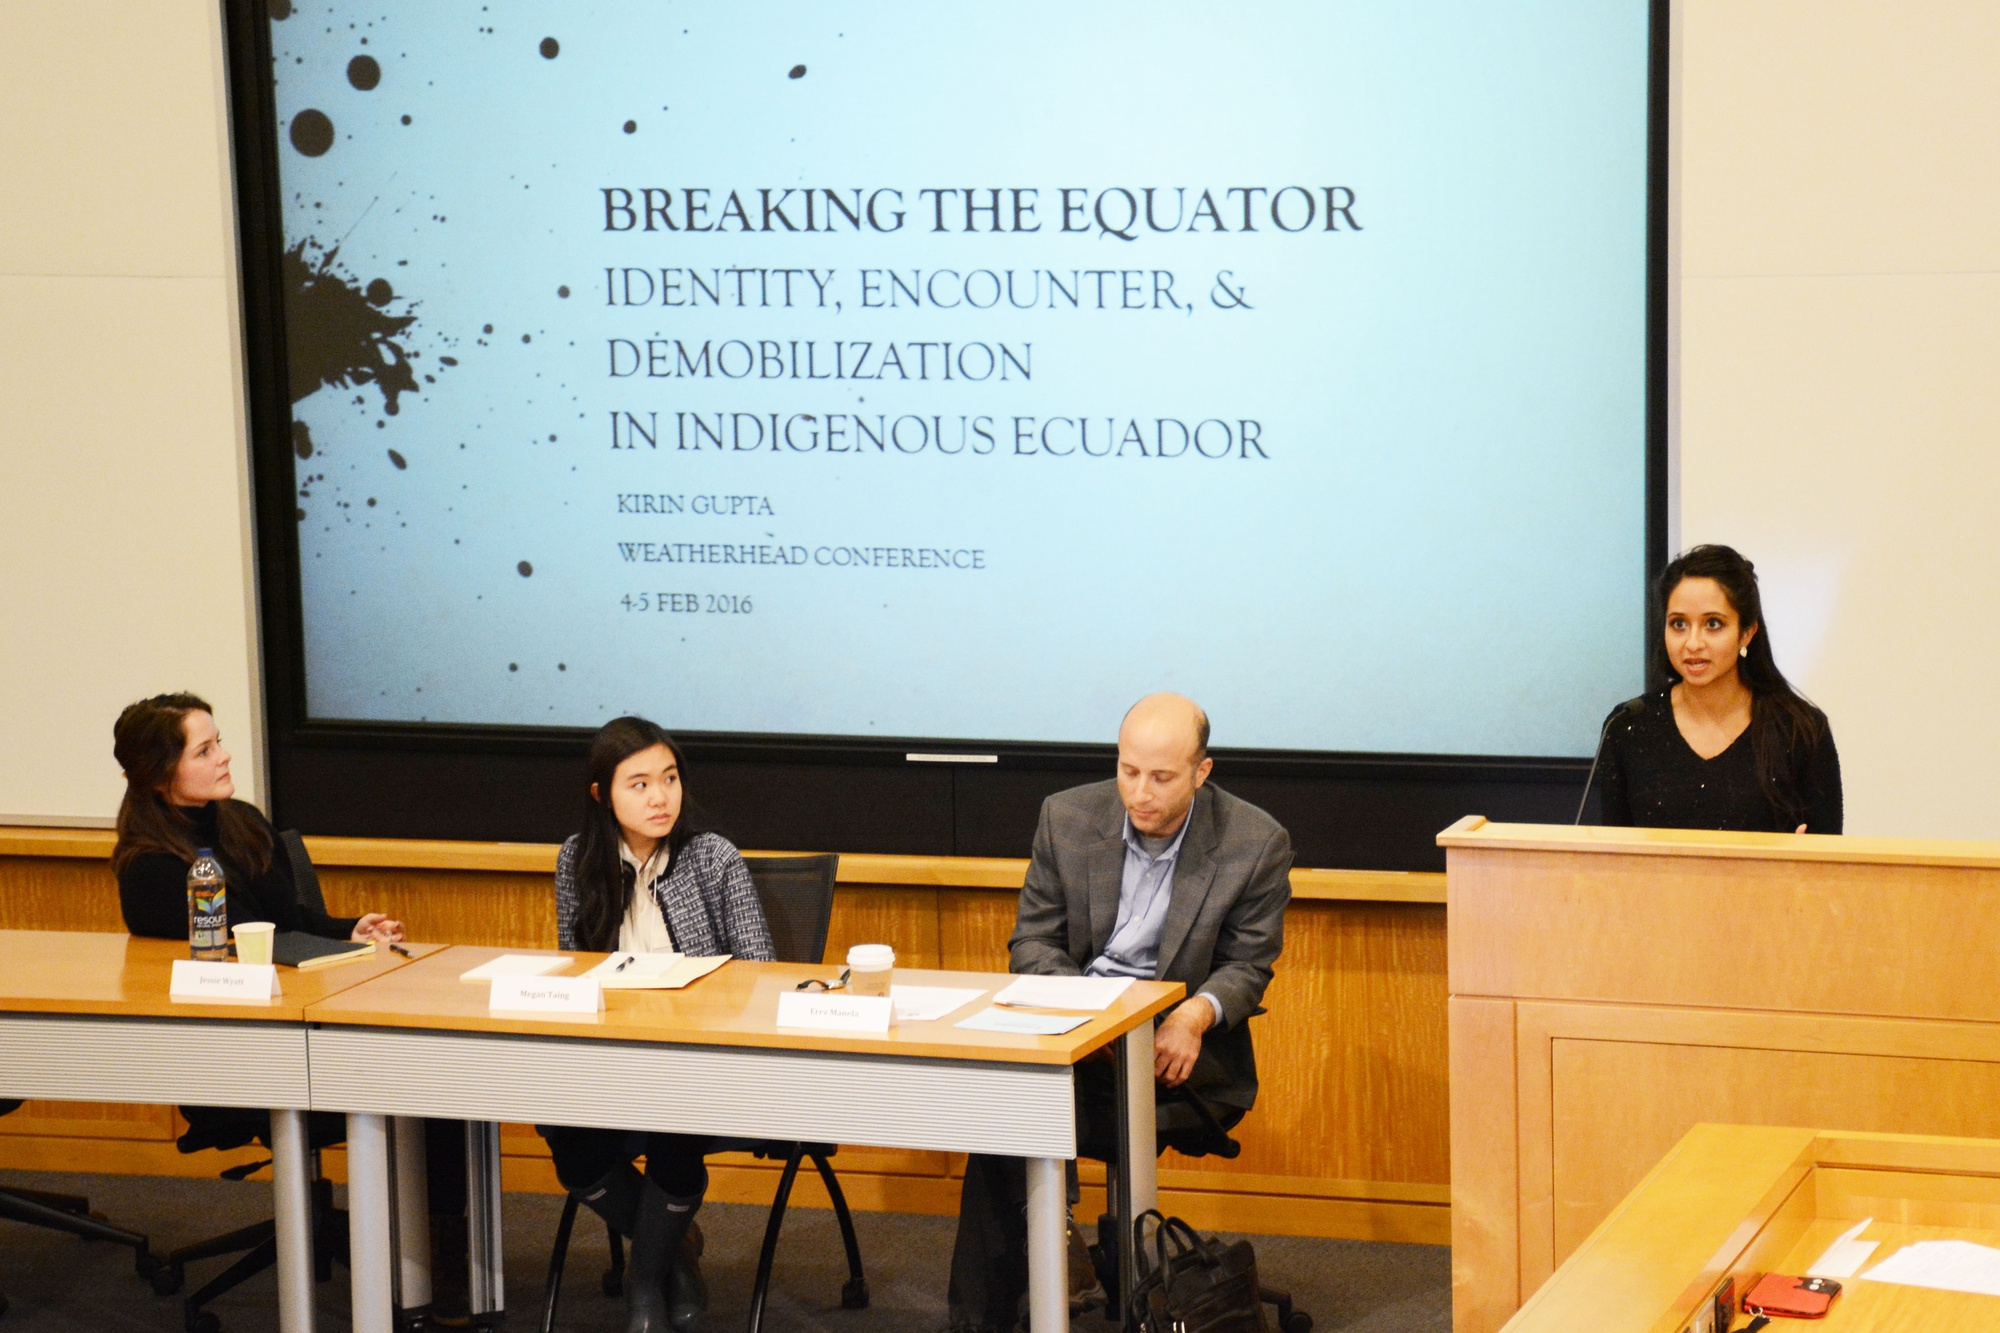 Kirin Gupta '16, a senior in Winthrop House, discusses her thesis on the gendered treatment of indigenous groups in Ecuador with Jessie M. Wyatt '16, Megan H. Taing '16, and chair Erez Manela. This panel took place at The Weatherhead Center for International Affairs' Undergraduate Associate Thesis Conference on Friday.